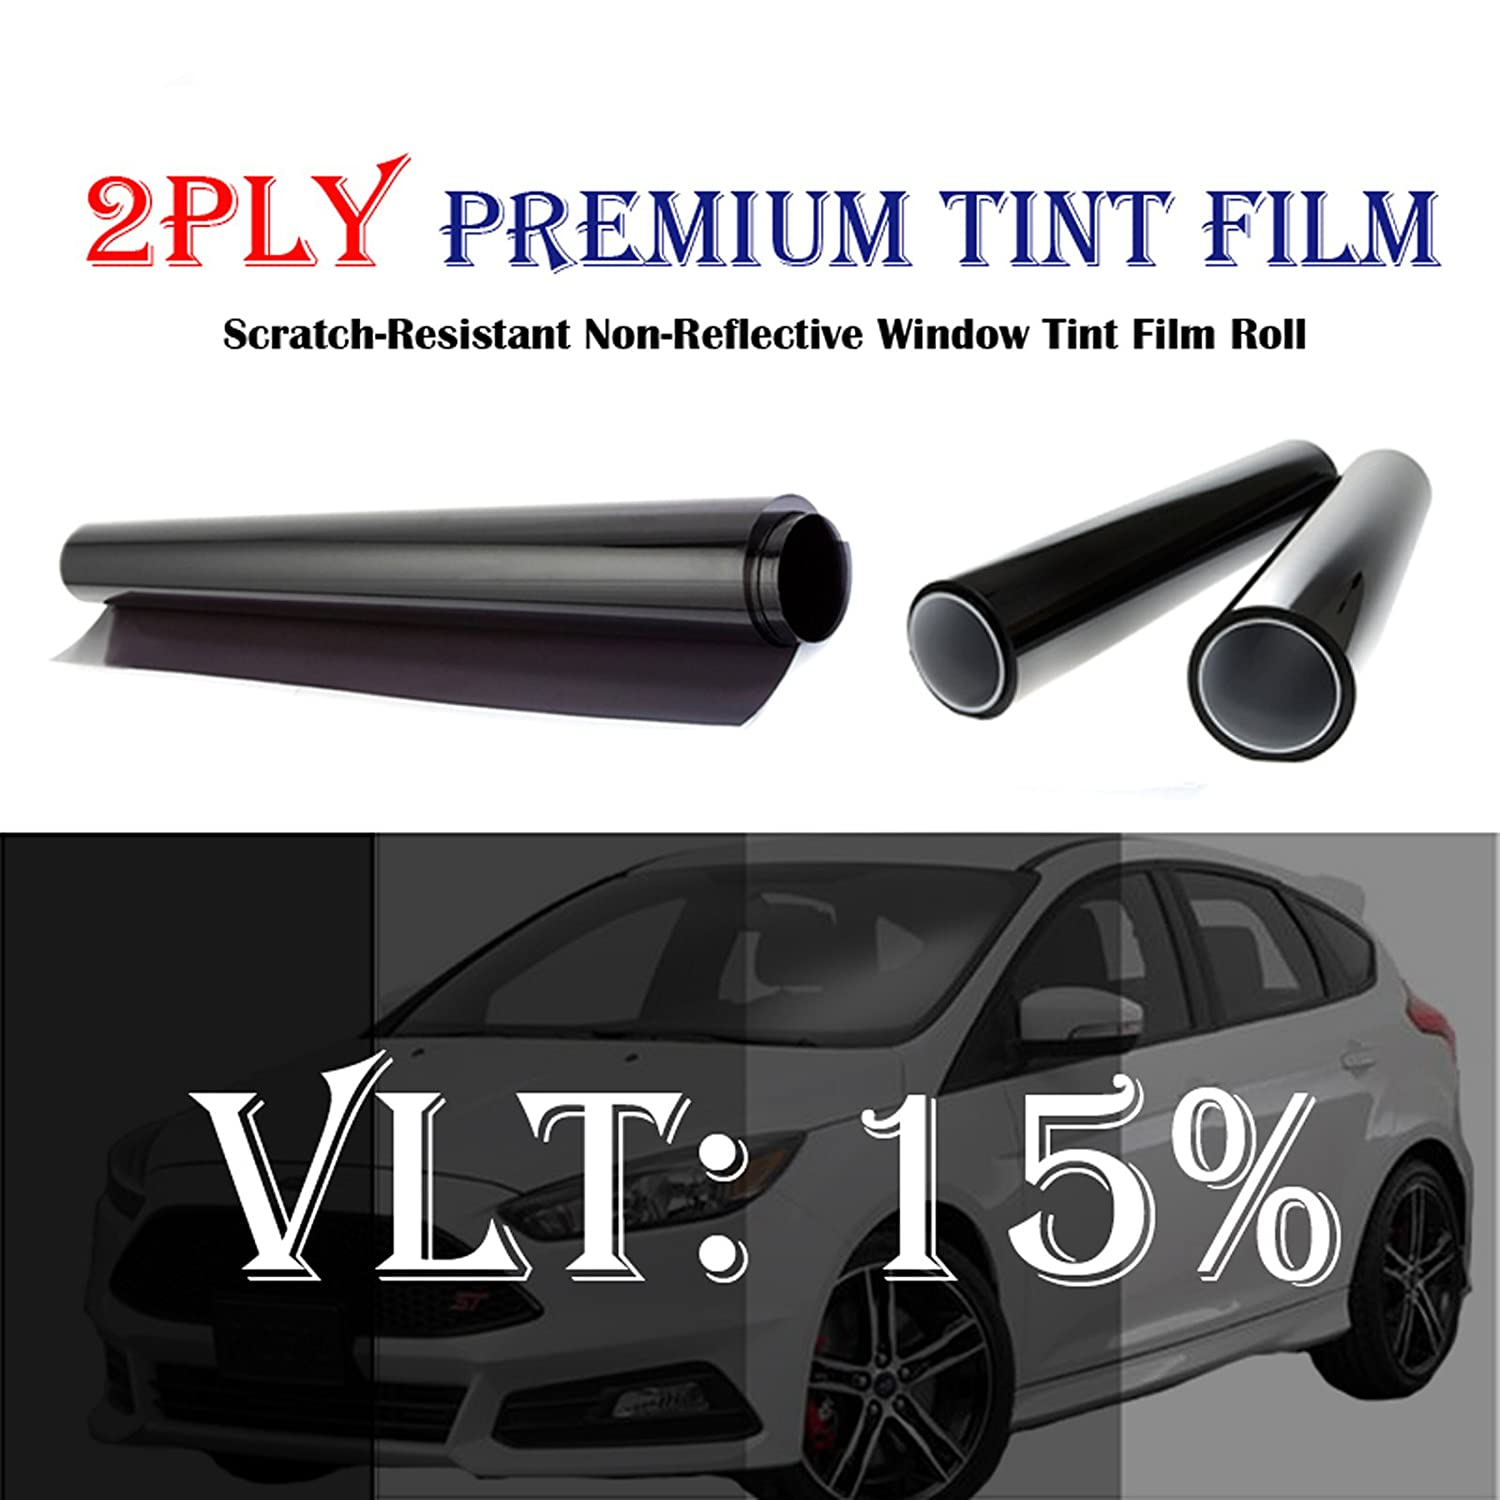 Mkbrother 2PLY 1.8 mil Premium 15% VLT 20 in x 100 Ft (20 x 1200 Inch) Feet Uncut Roll Window Tint Film